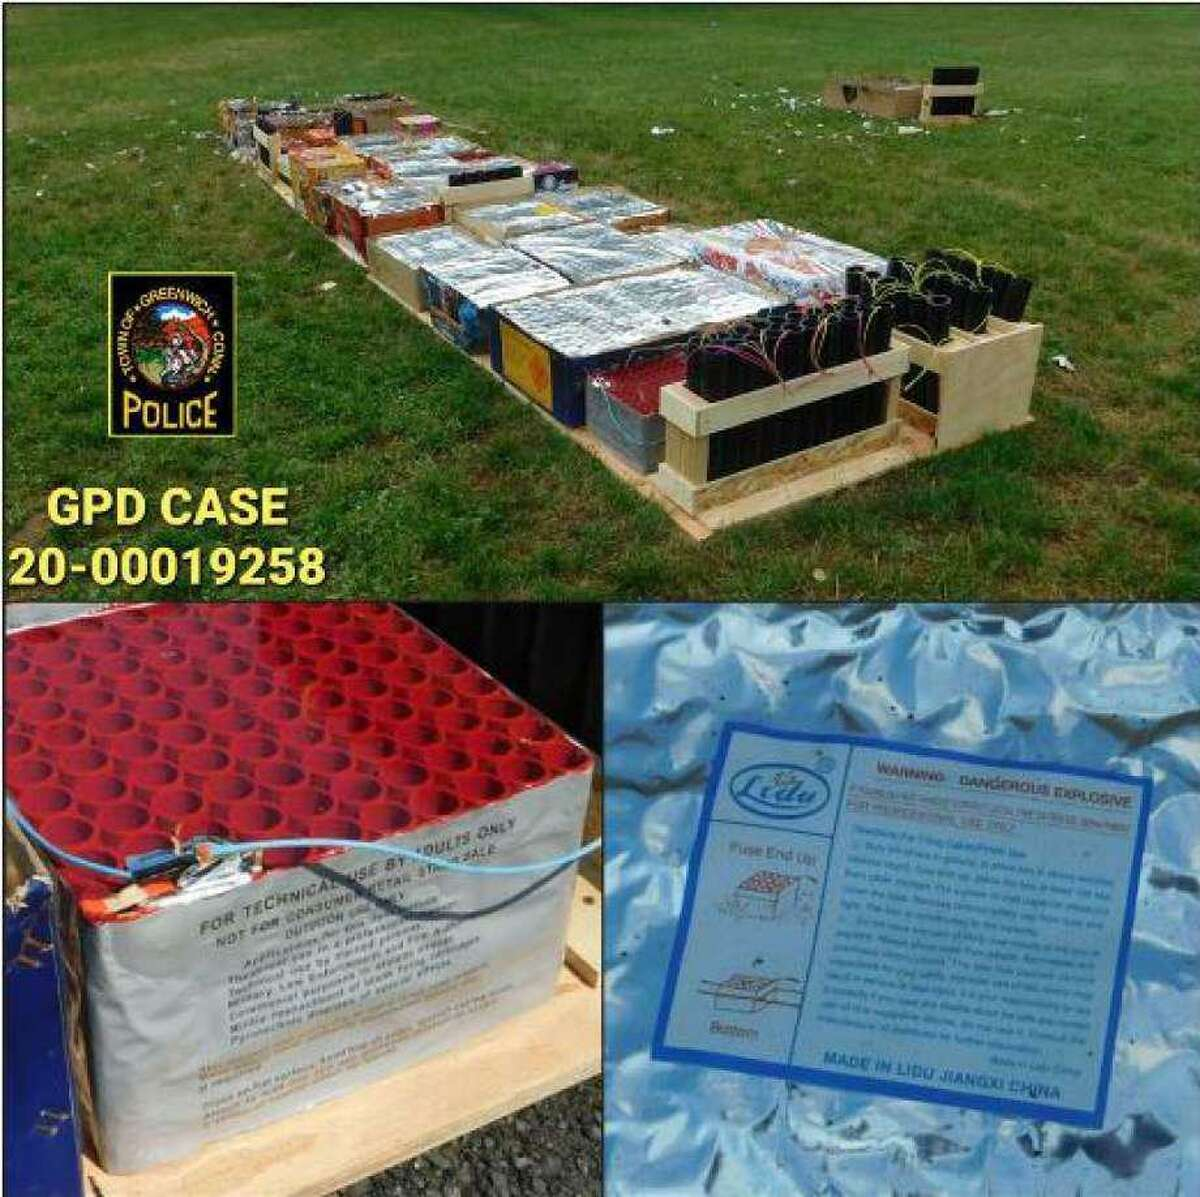 The fireworks confiscated from Bible Street Park.